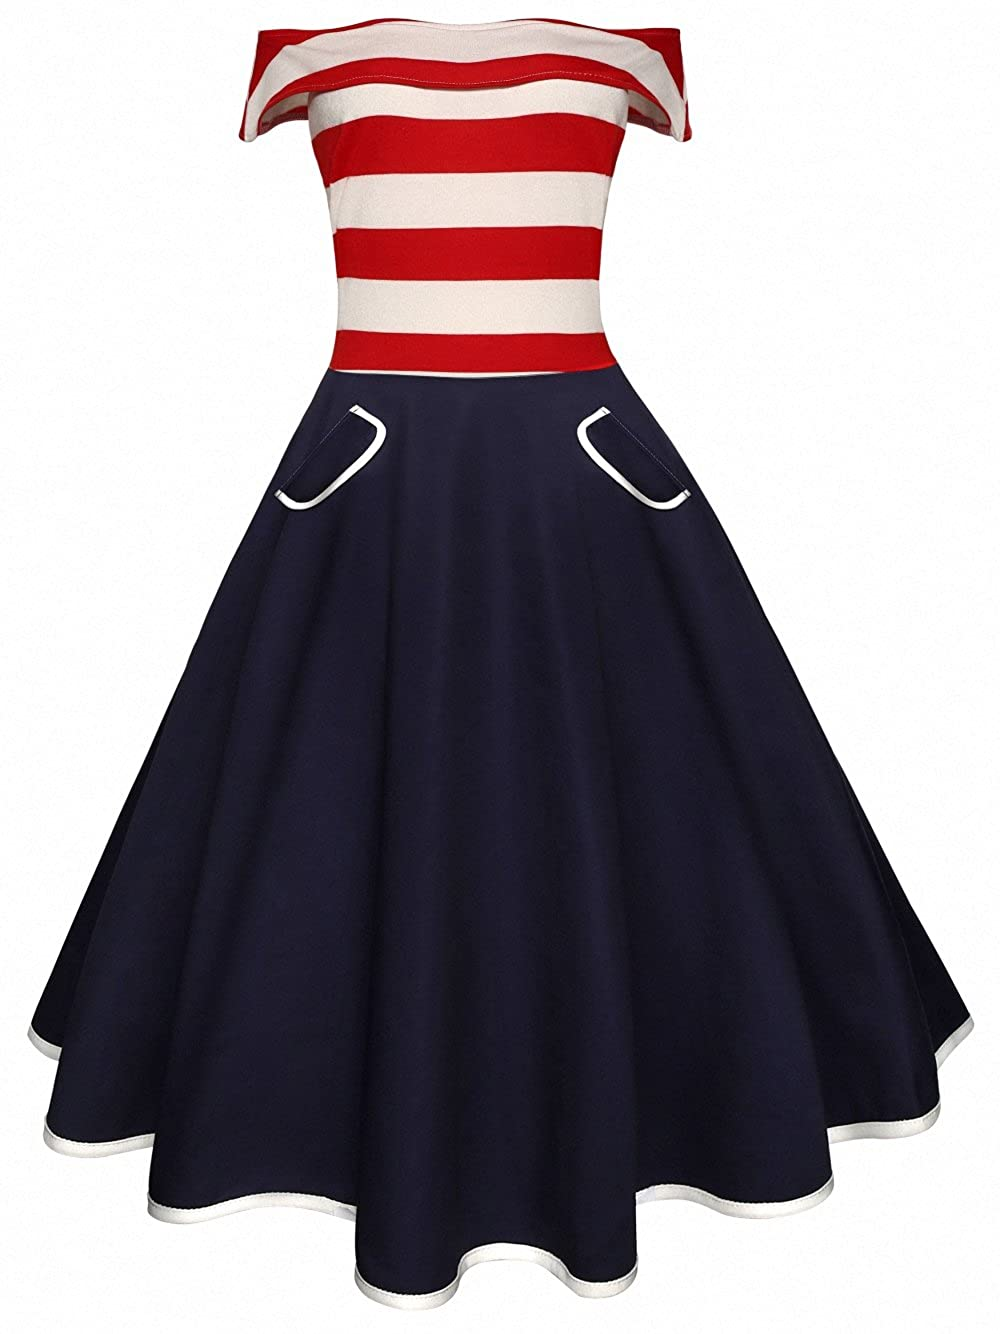 1fb5123dc Latest fashionable T-shirt dress with American flag design to show your  patriotic. Crop fitted bodice with flowy maxi skirt